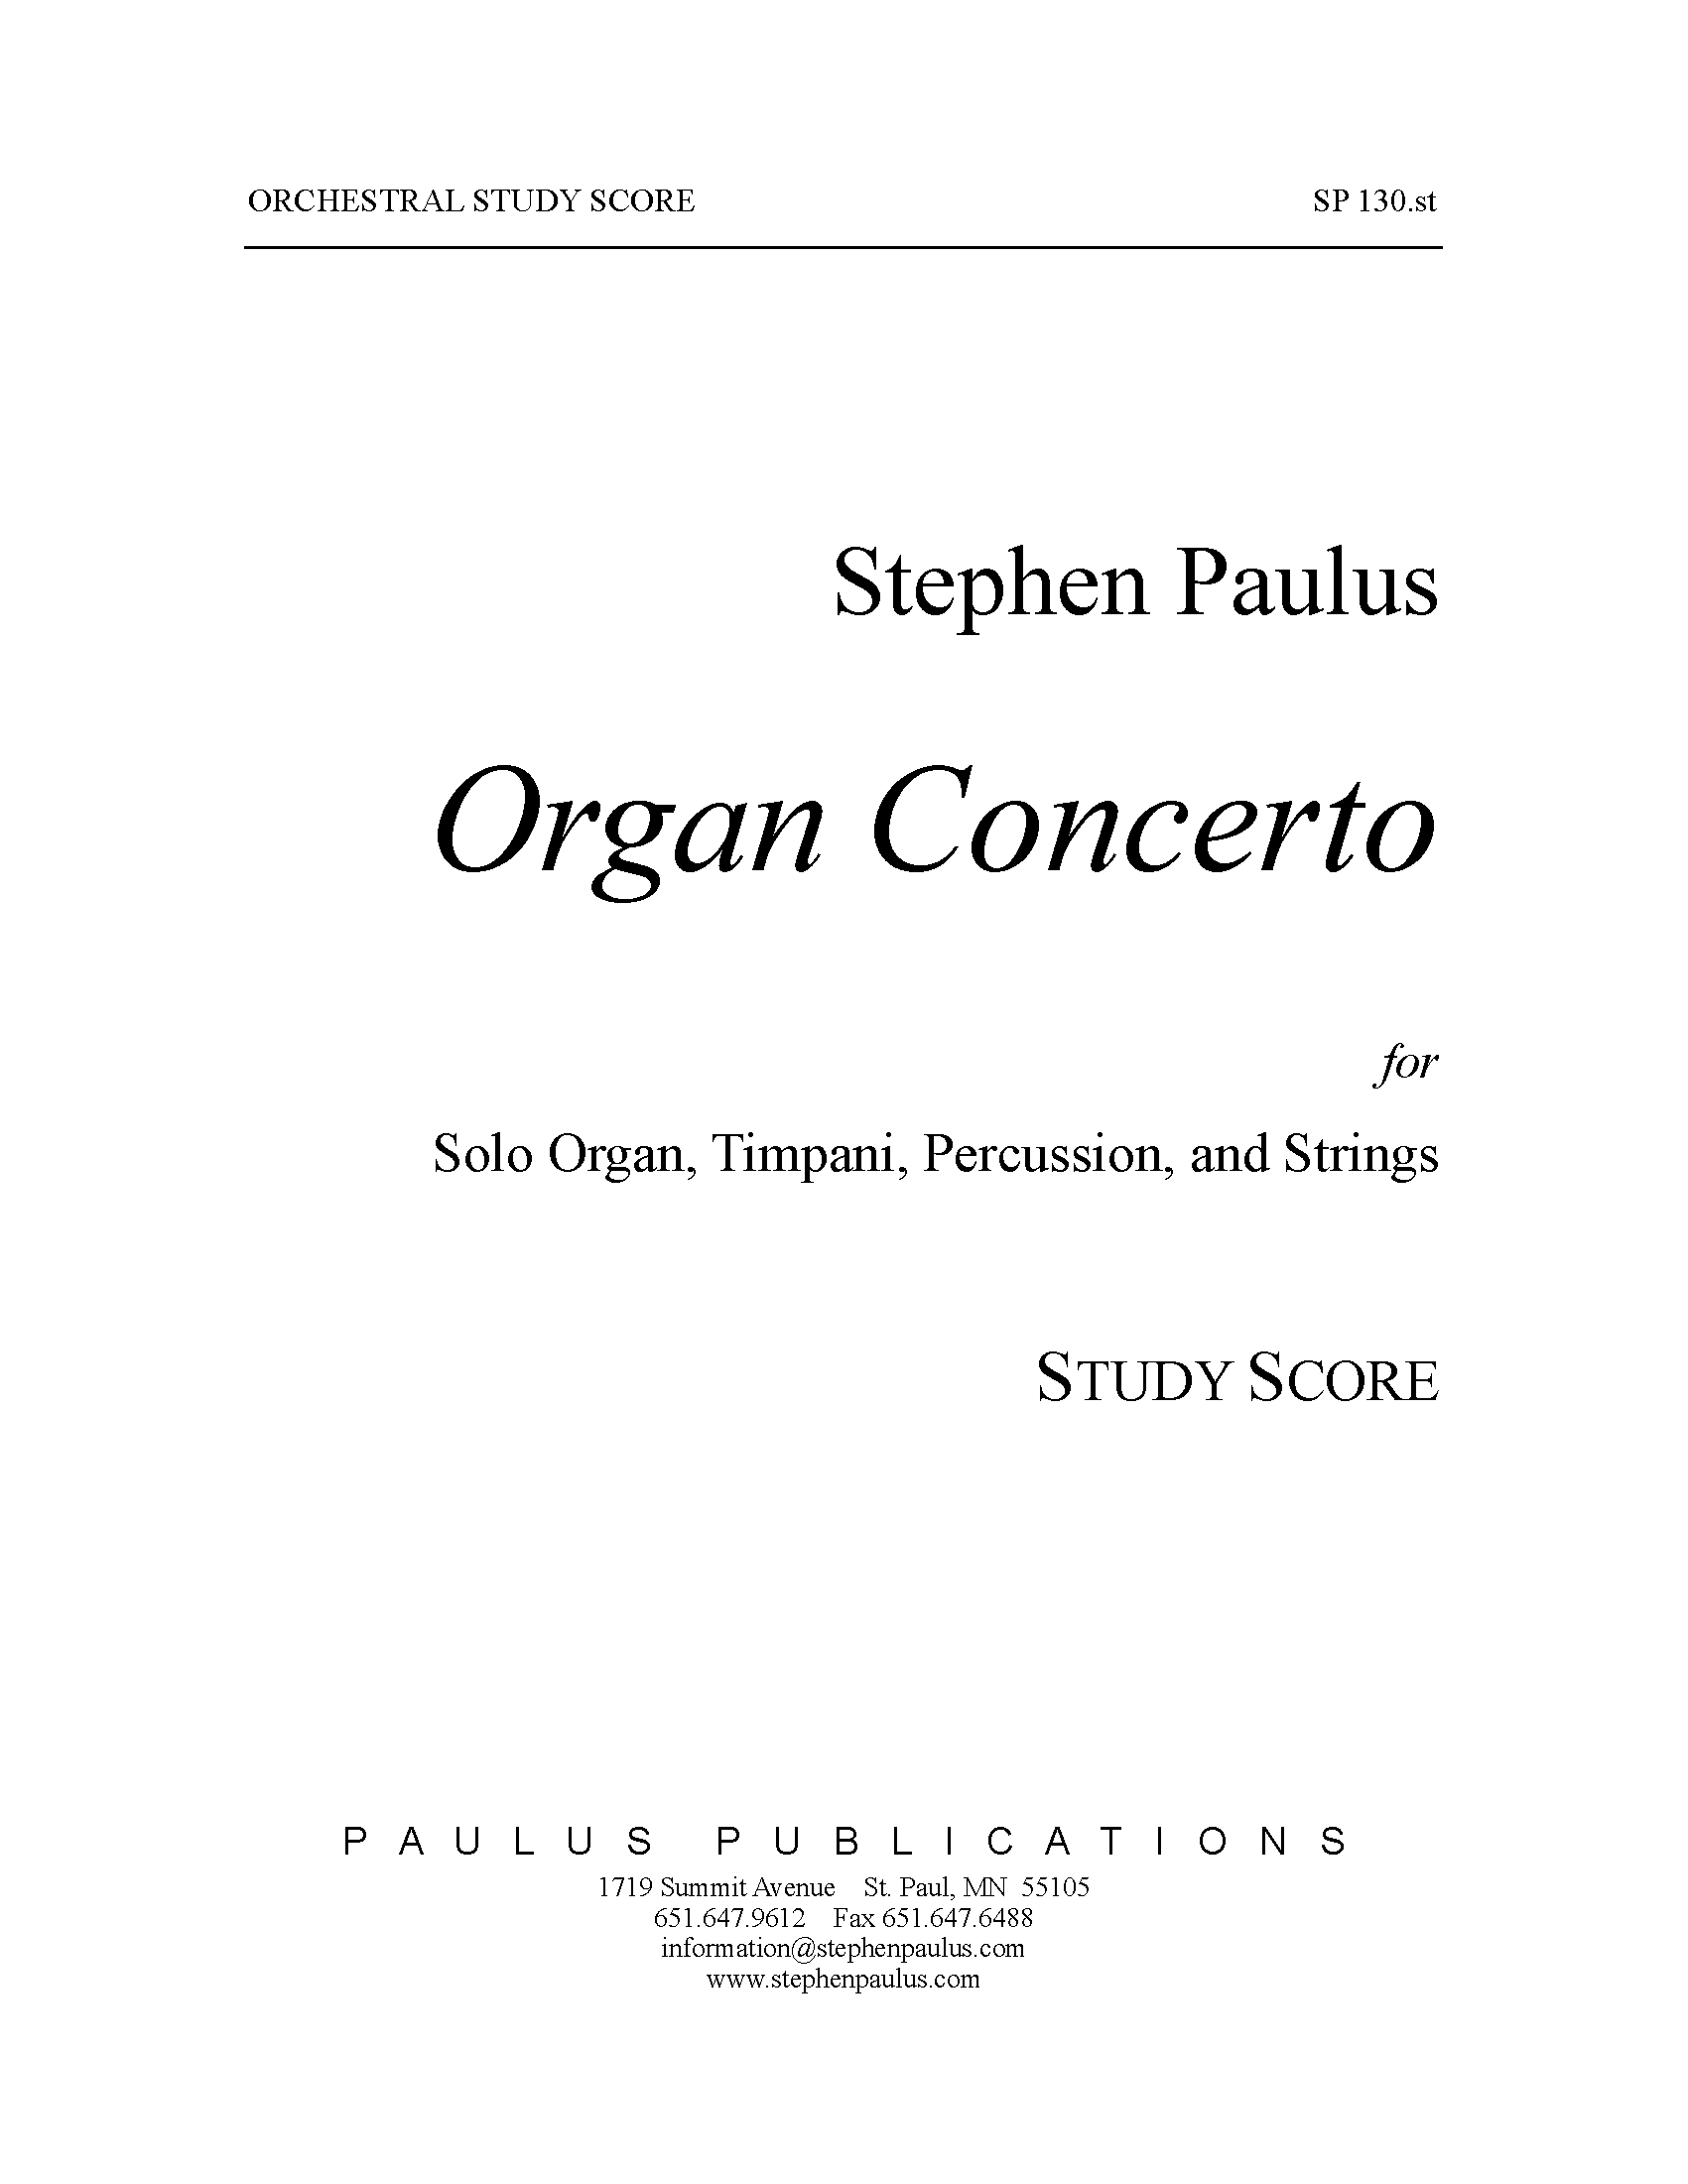 Organ Concerto for Organ, Timpani, Percussion & Strings